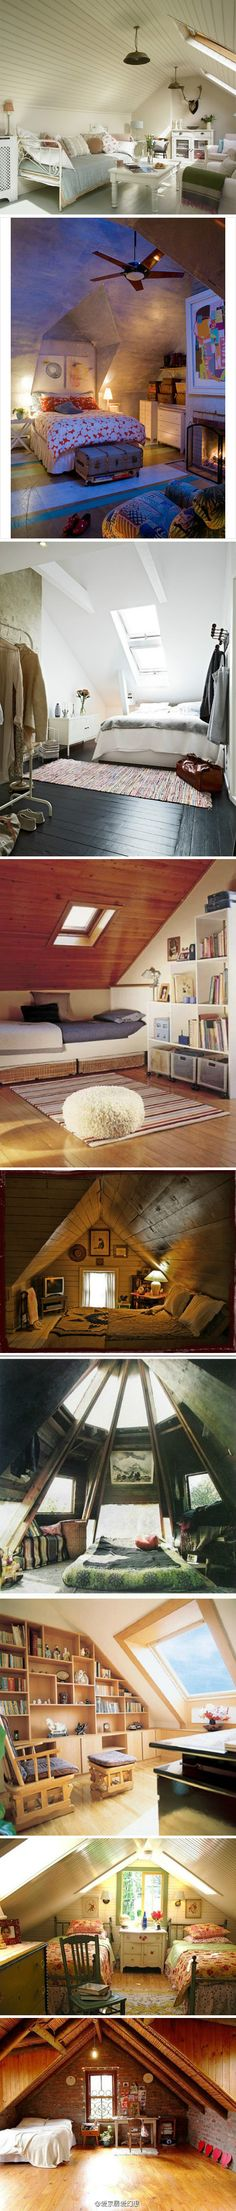 great ideas for attic spaces, etc if we ever build